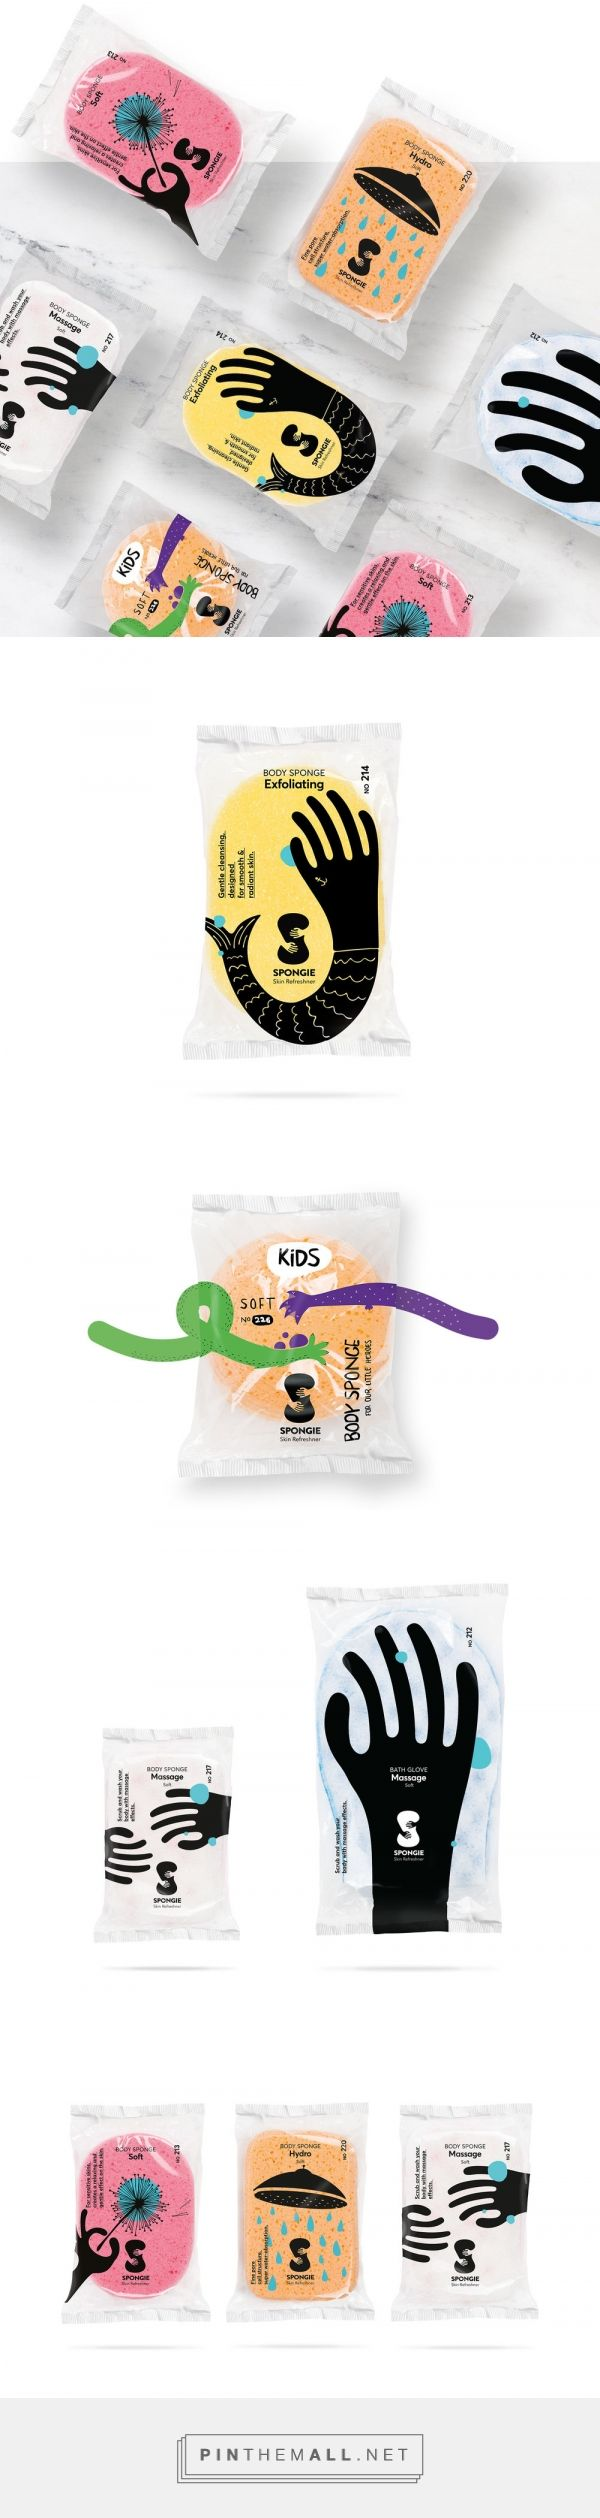 Body sponge packaging | Designed by Luminous Design Group